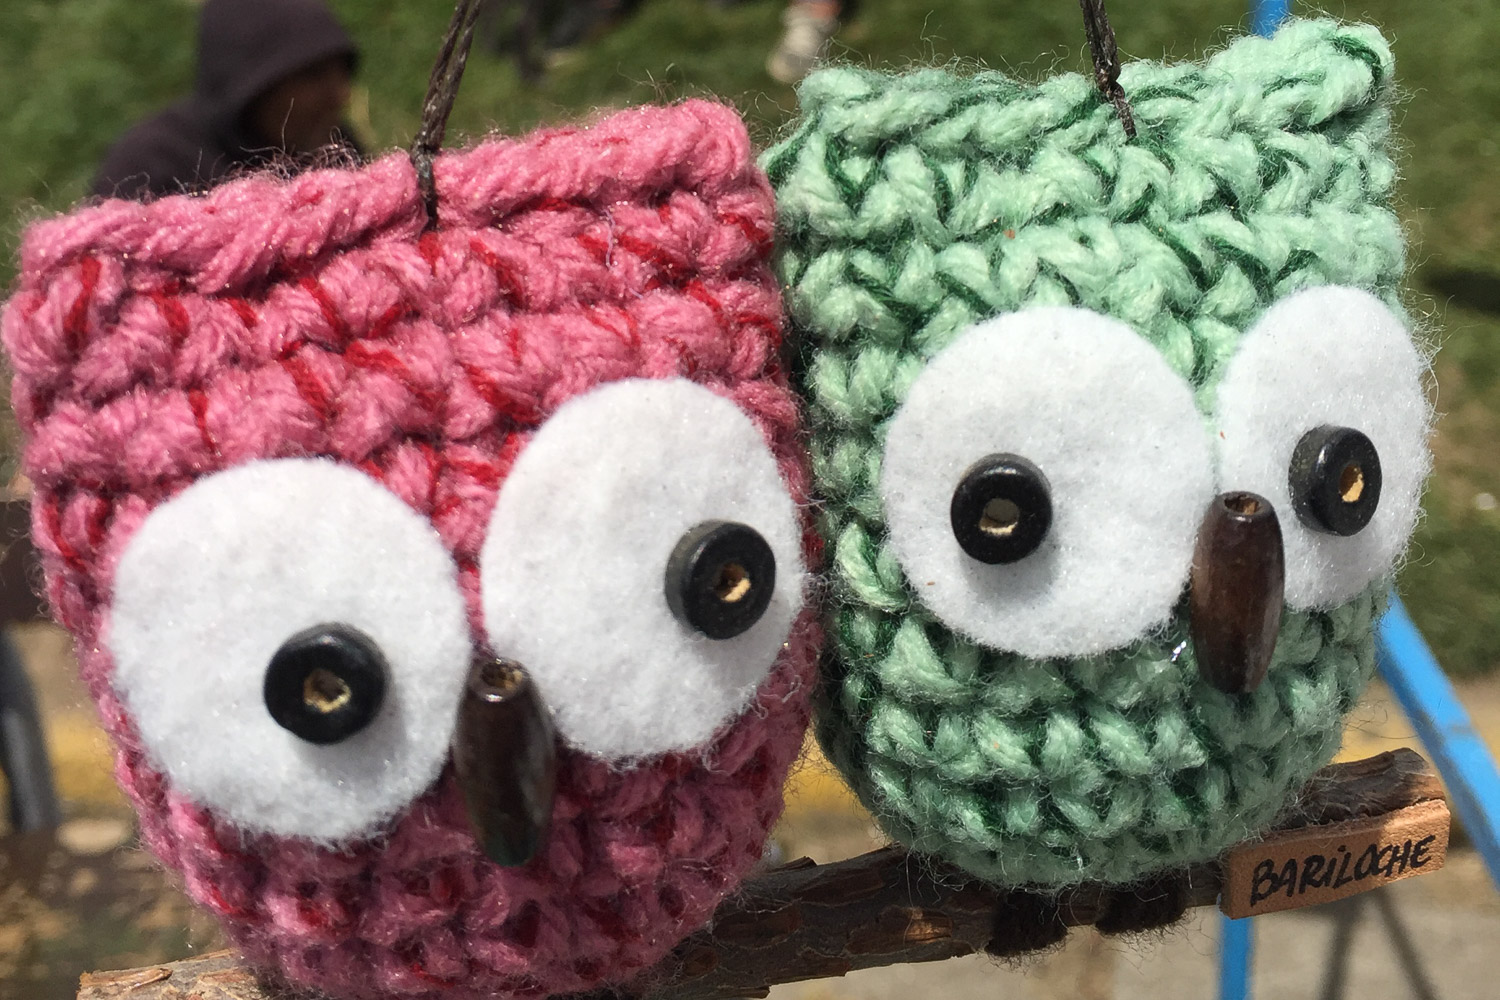 Knitted owls in Bariloche market in Argentina